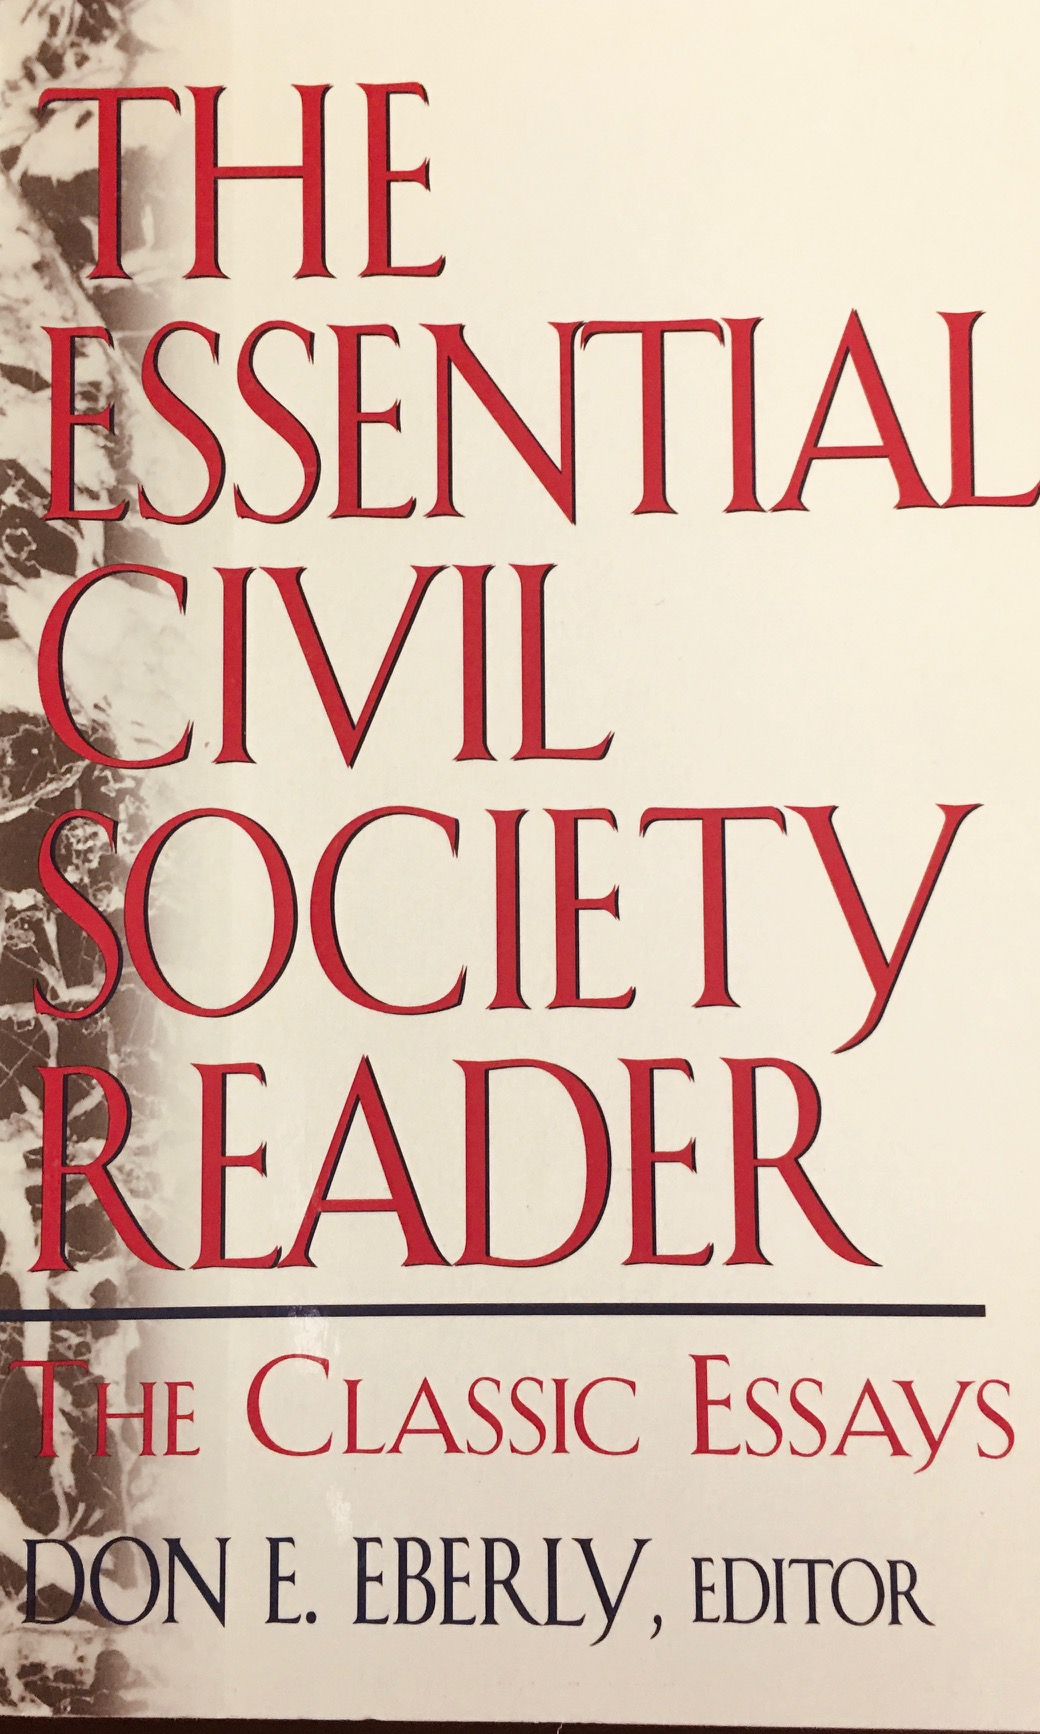 Image for The Essential Civil Society Reader: Classic Essays in the American Civil Society Debate